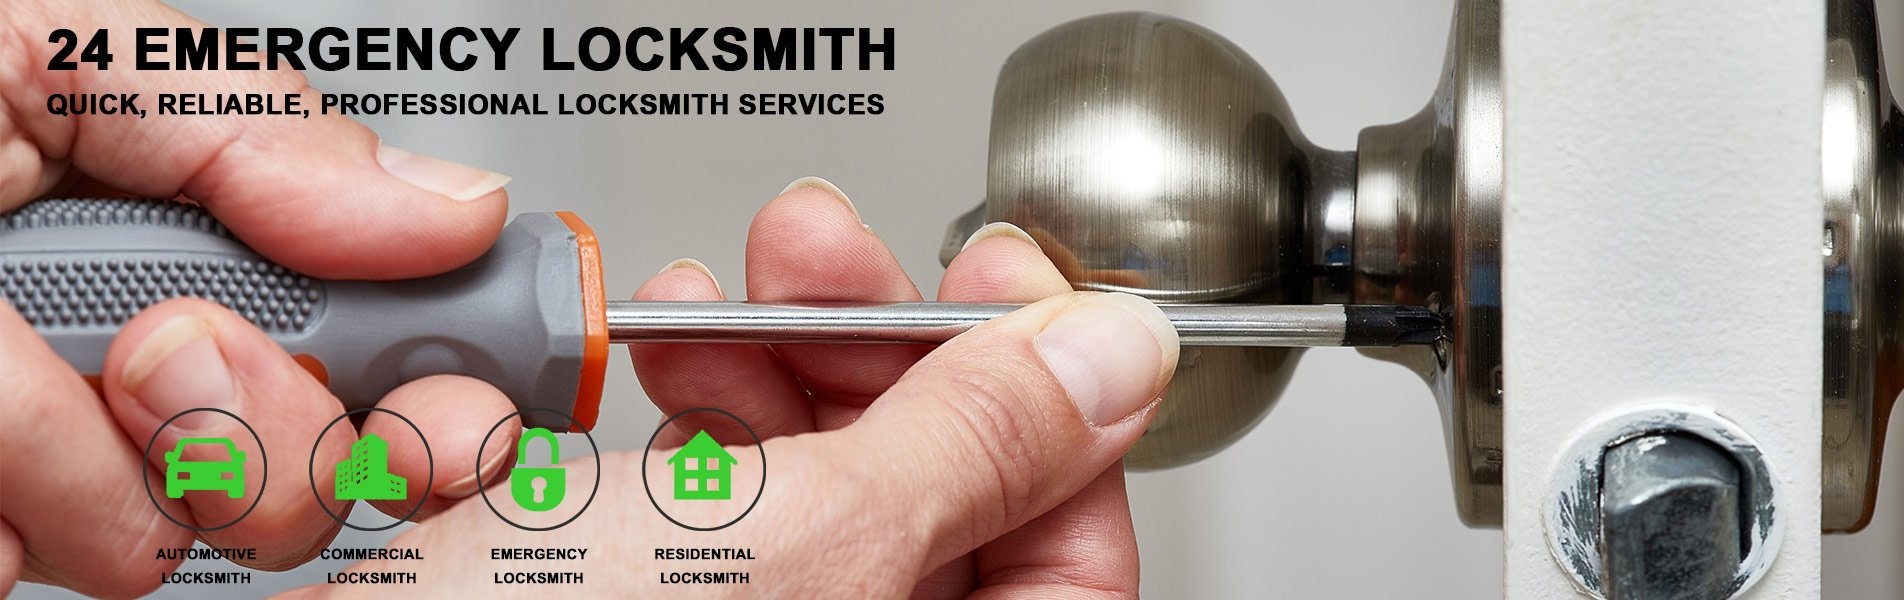 Woodland Hills Locksmiths Woodland Hills, CA 818-736-0447